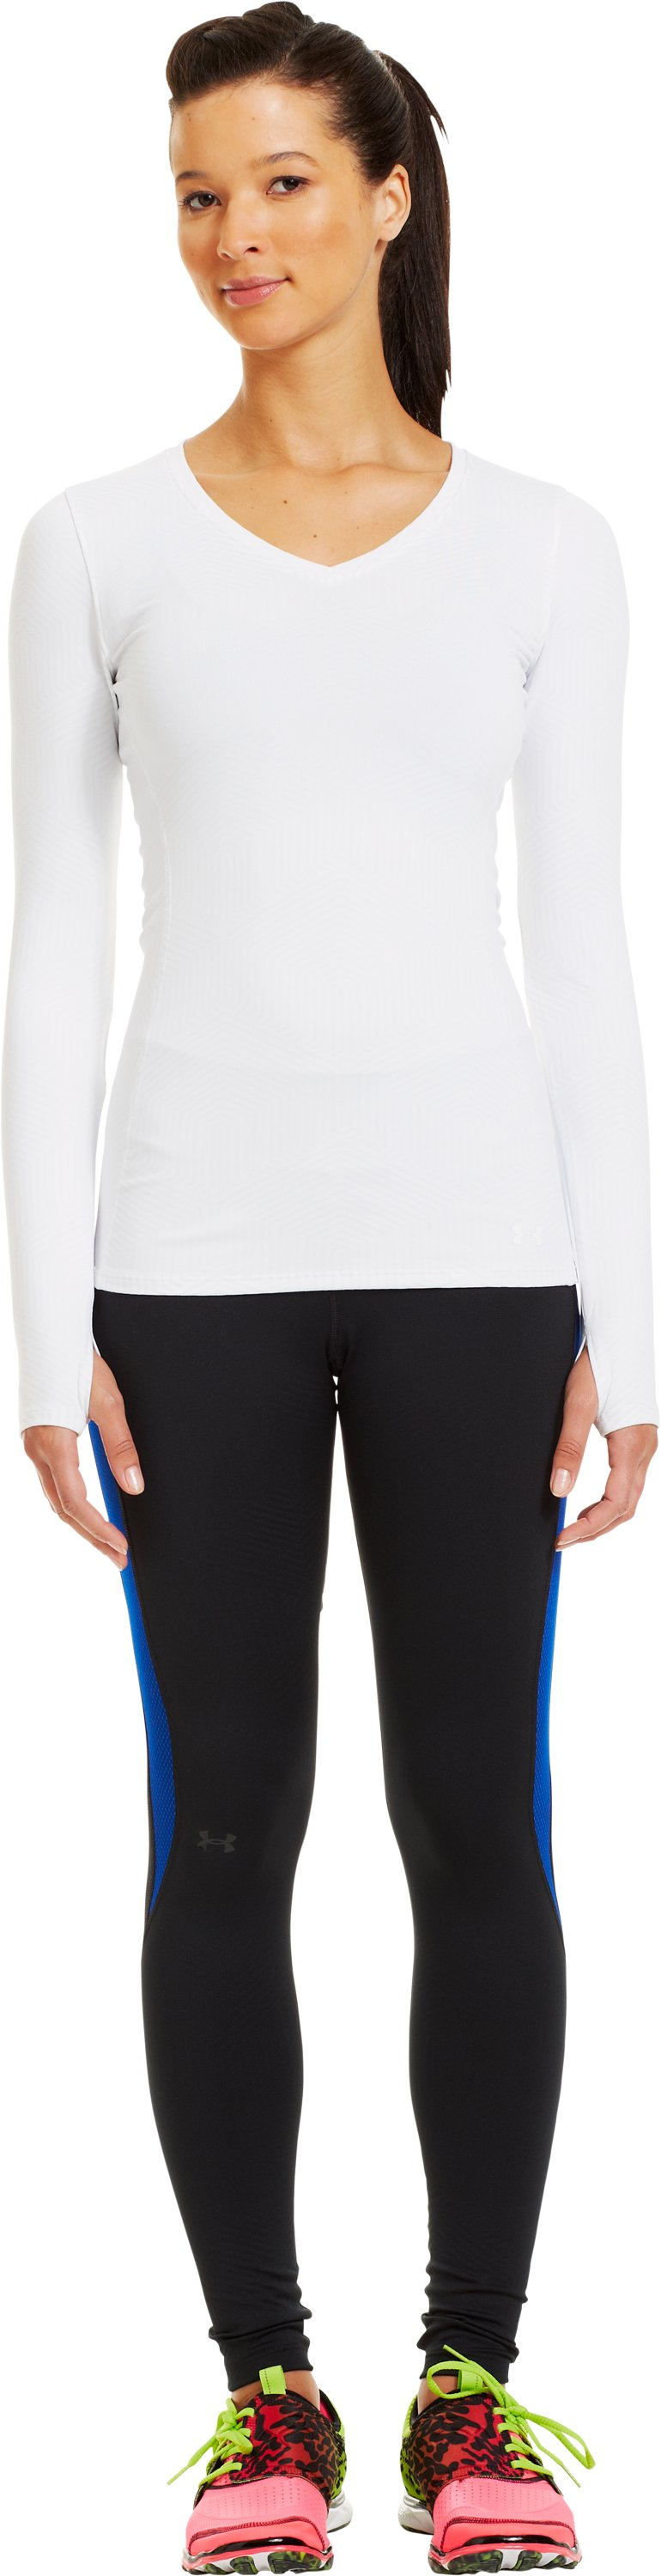 Women's ColdGear® Infrared V-Neck Long Sleeve, White, Front